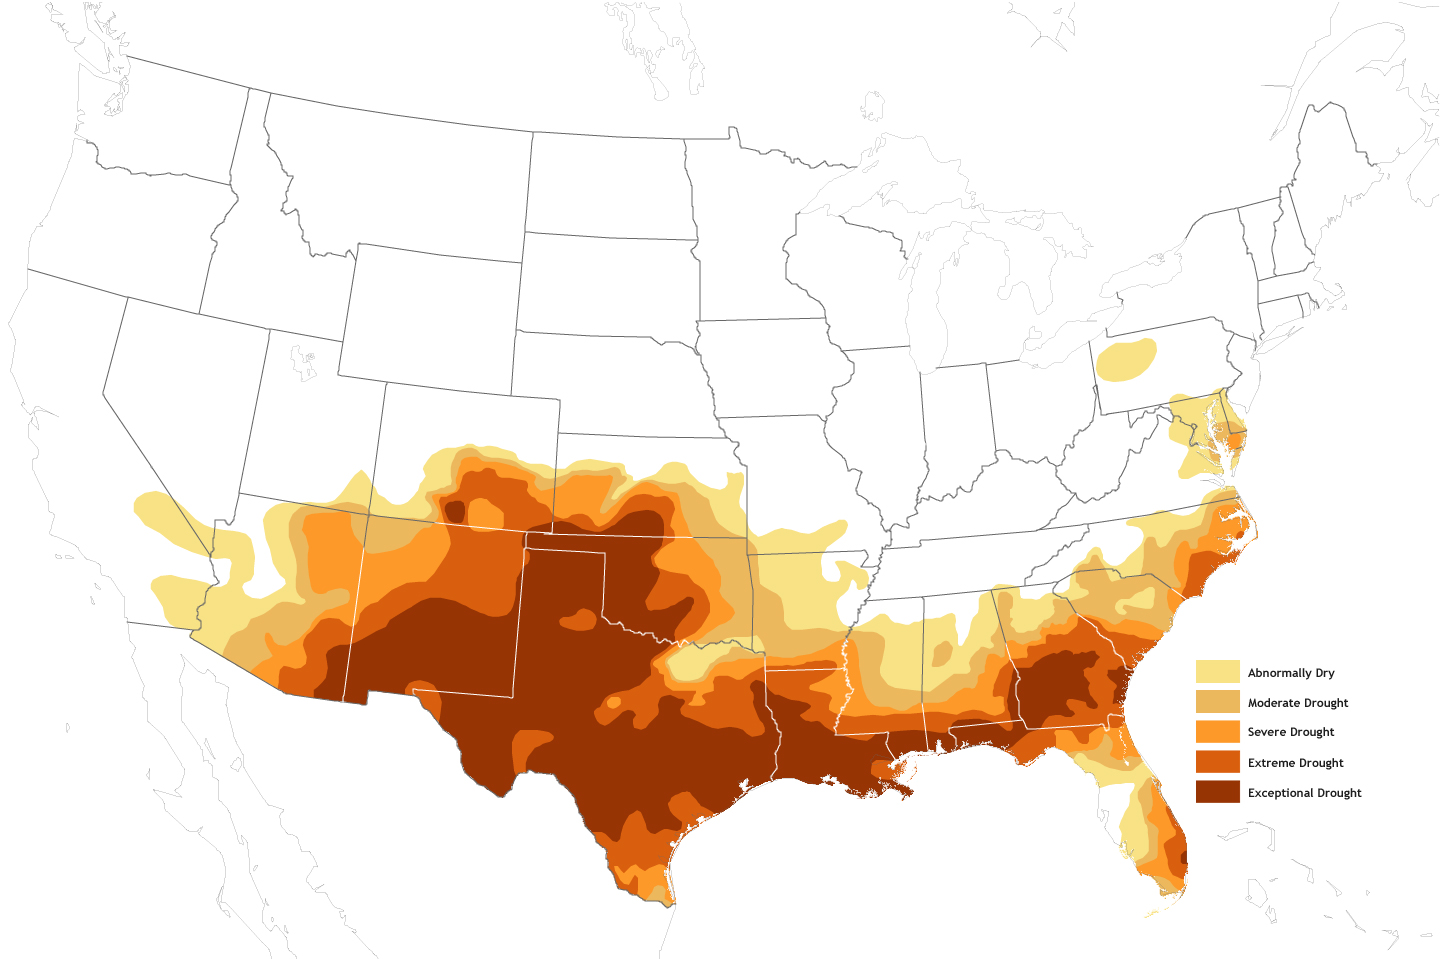 August 2011 Drought Map